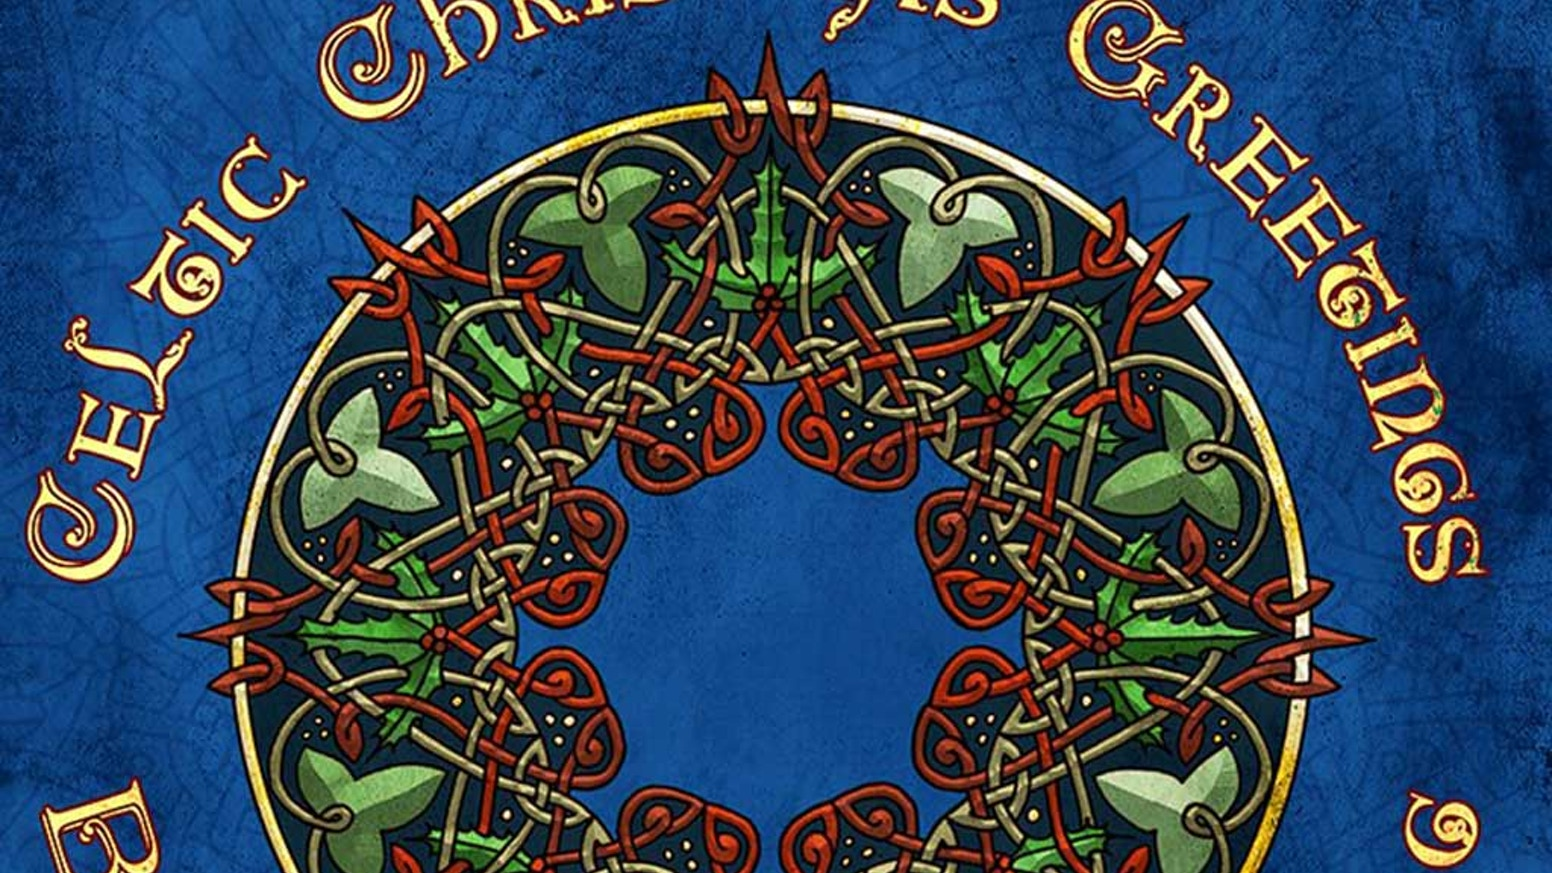 Celtic christmas greeting cards cd by marc gunn kickstarter send your family and friends celtic christmas greetings cards this holiday season complete with celtic christmas music m4hsunfo